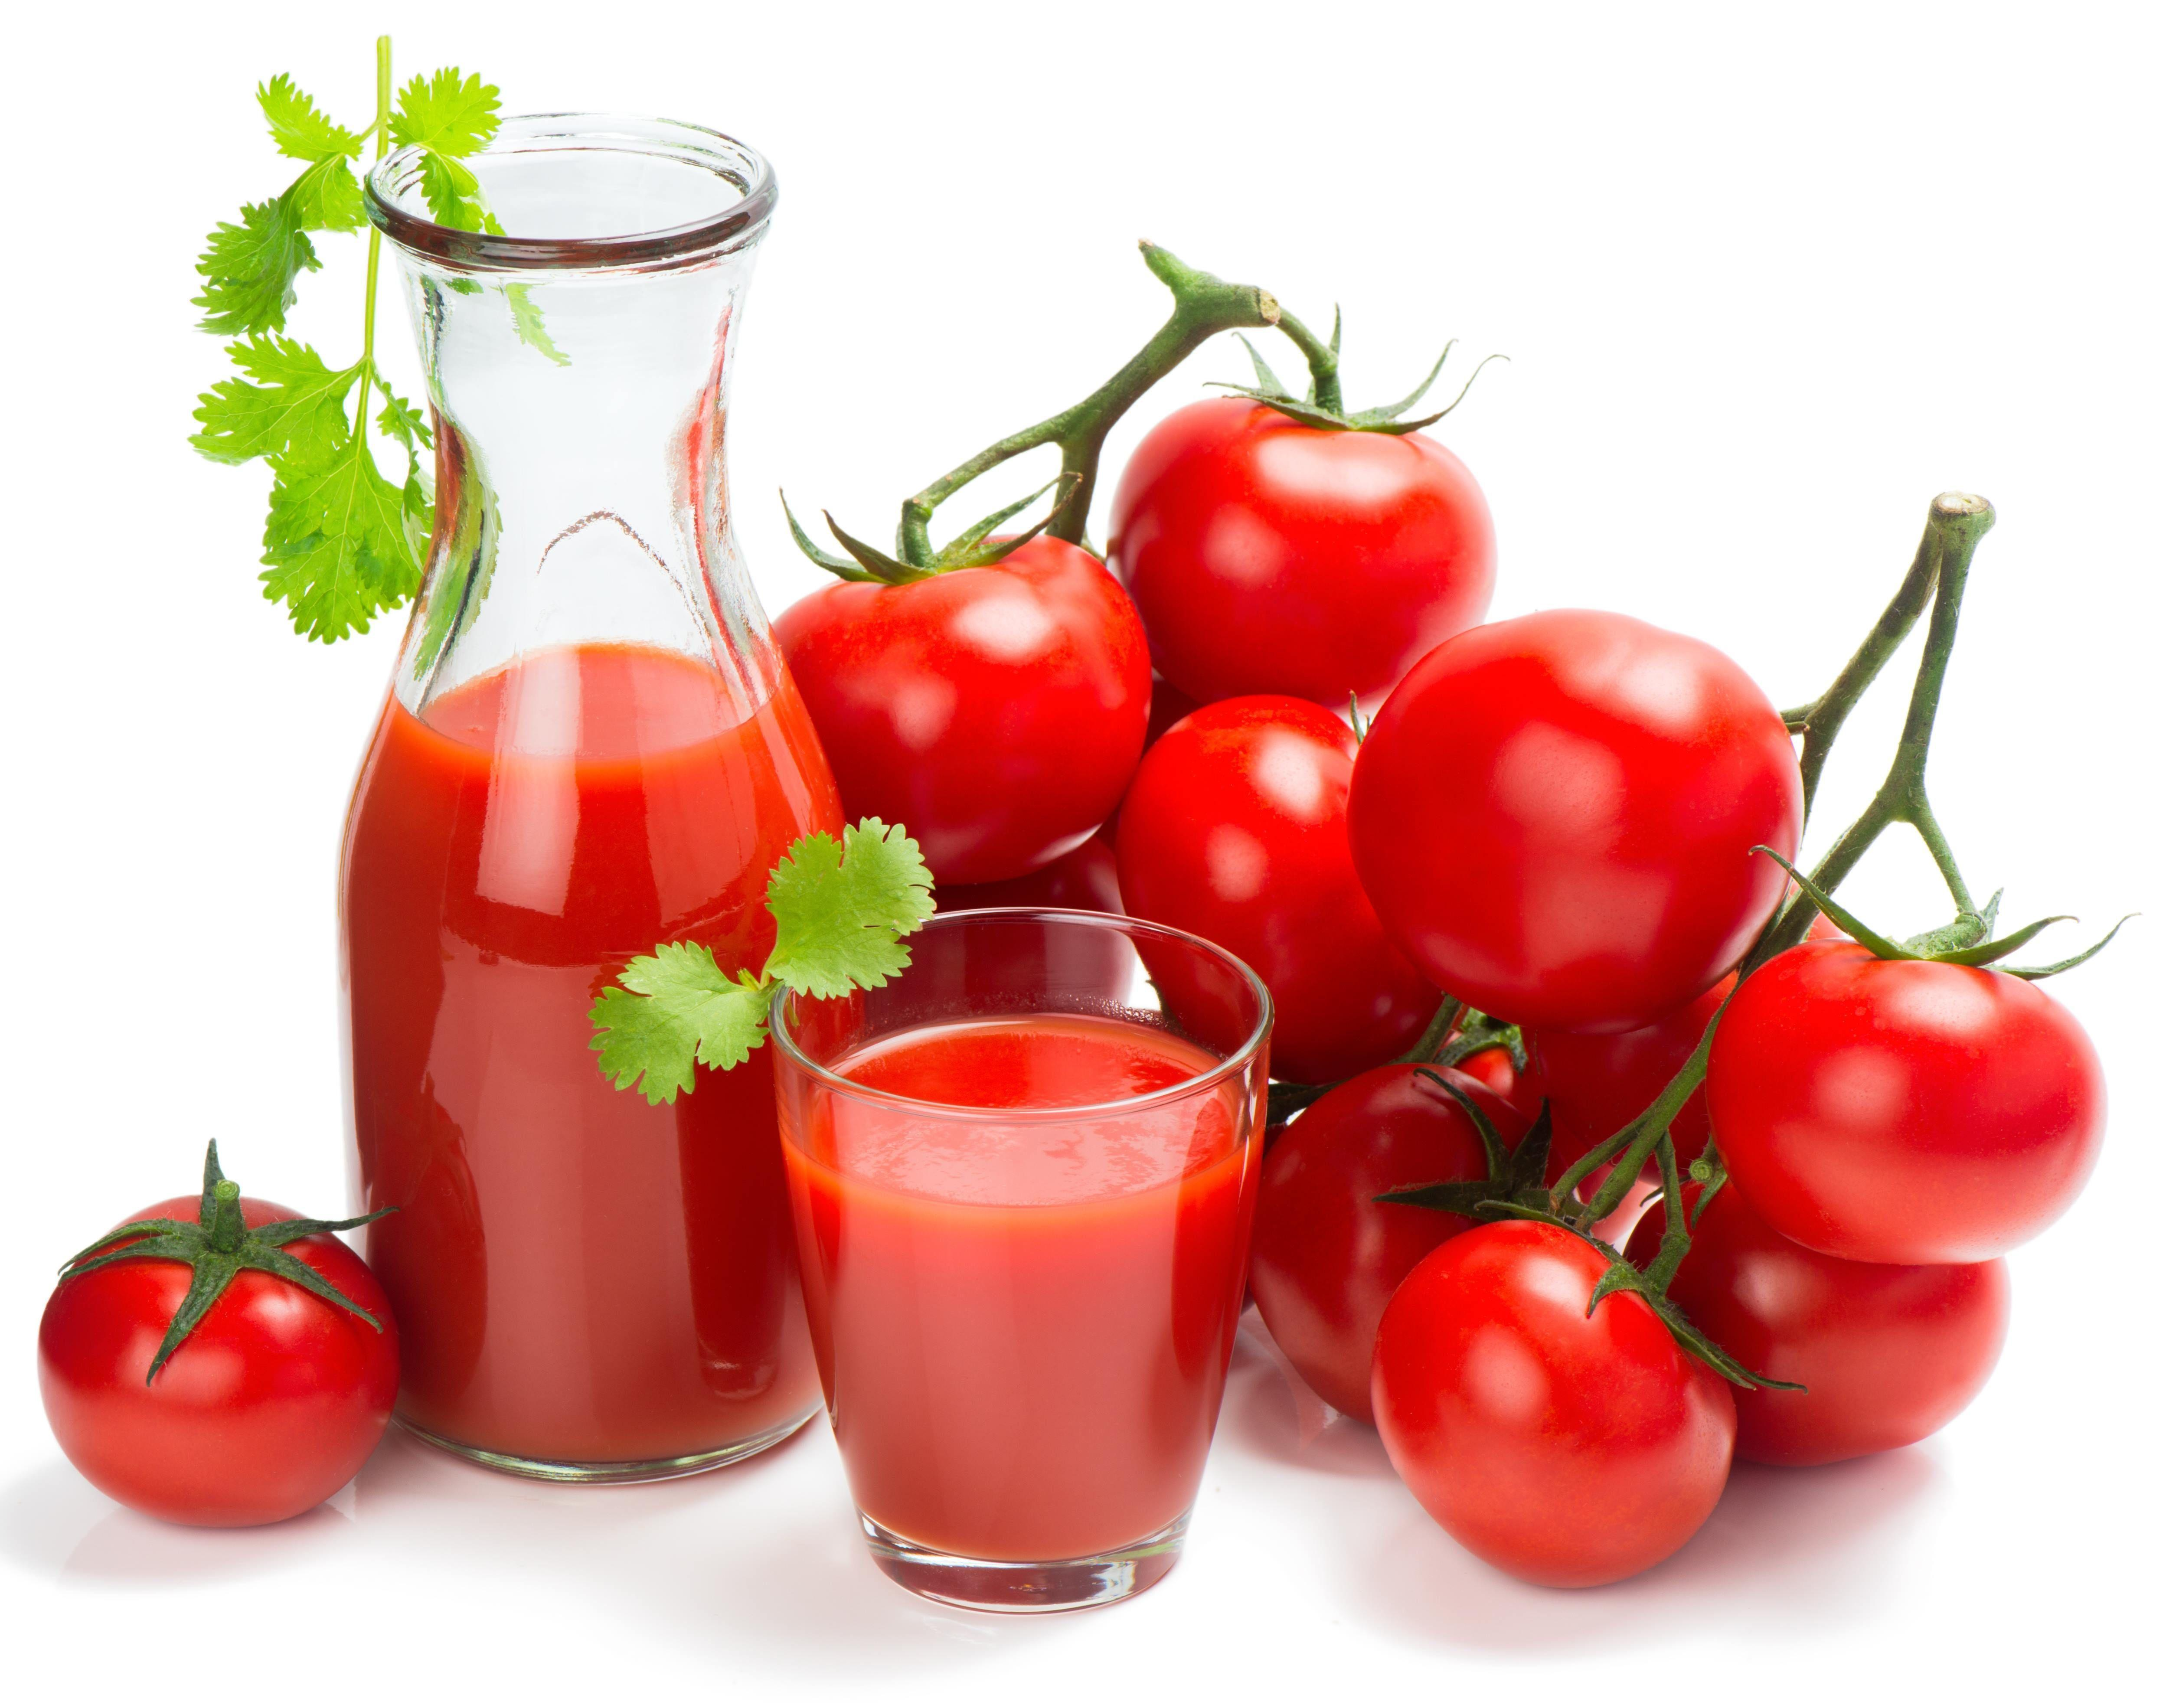 Tomato Wallpapers Image Photos Pictures Backgrounds